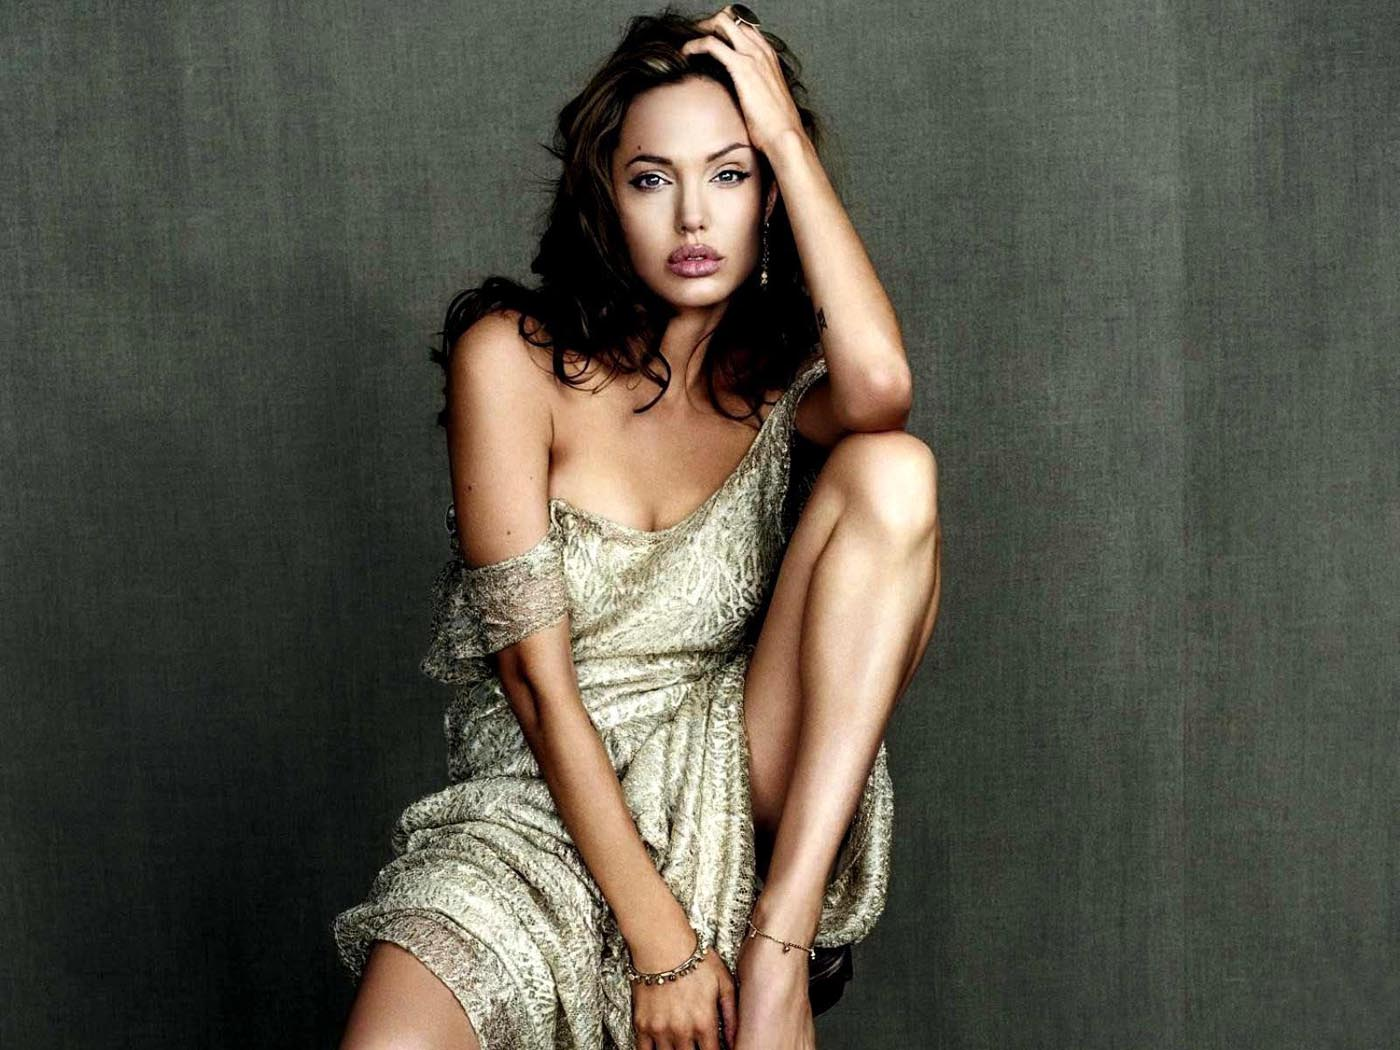 Angelina Jolie: Hollywood Actress: Angelina Jolie's Hd Images